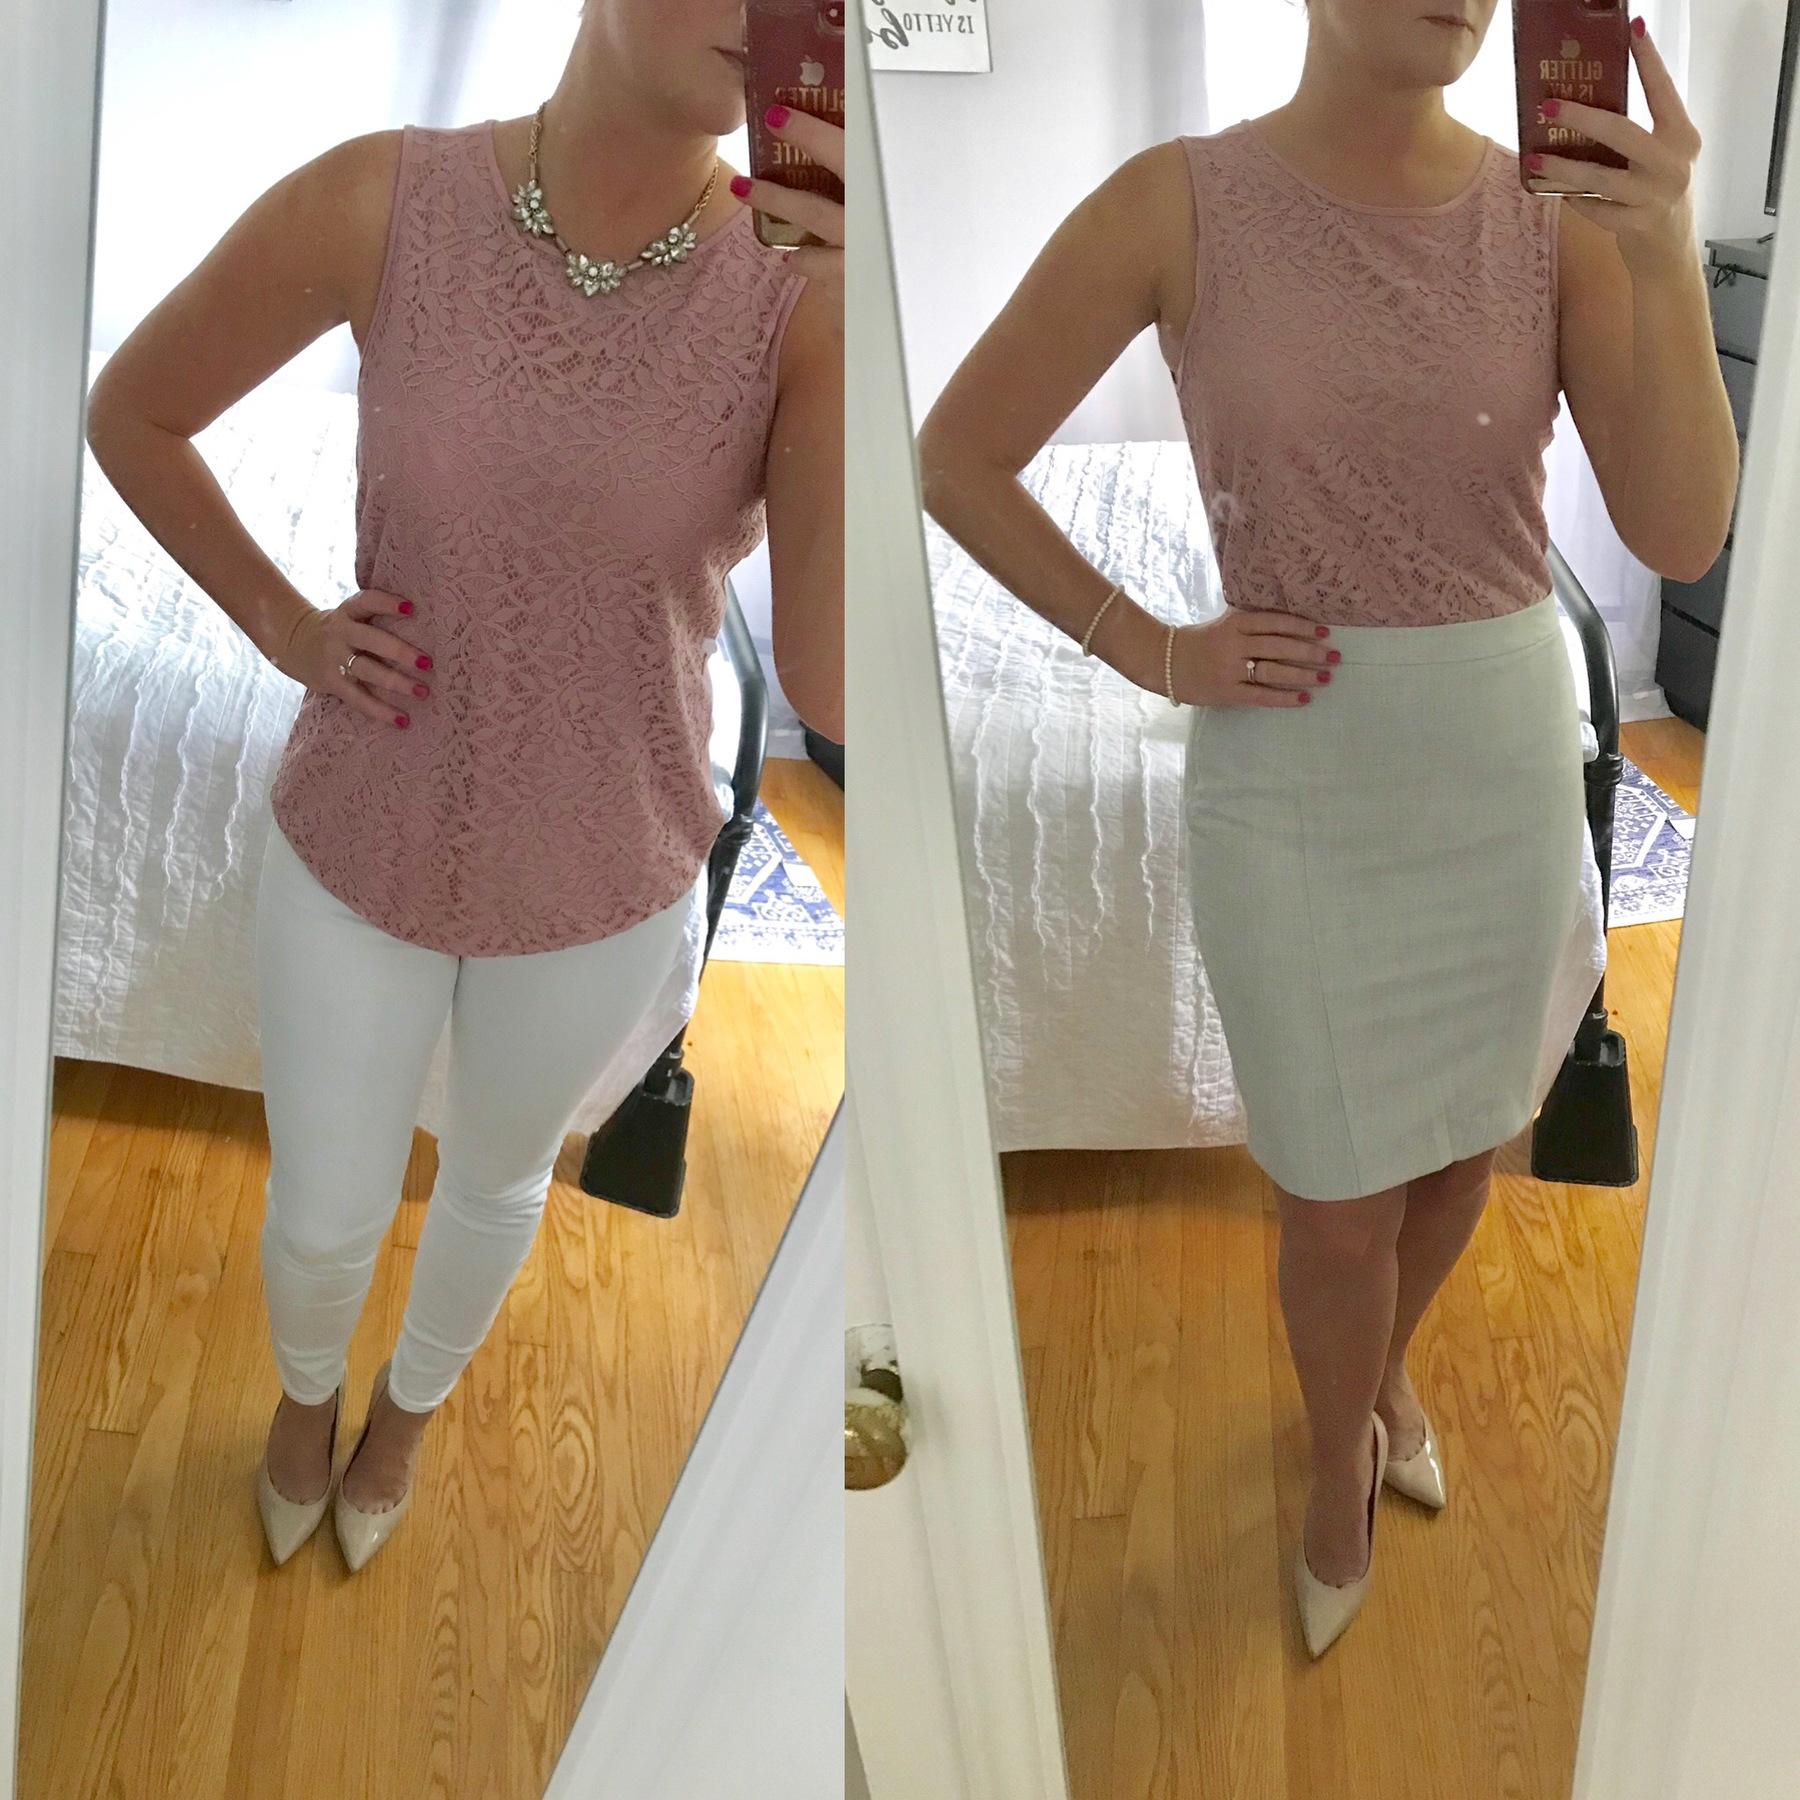 Karen pairs her lacy top with with slacks, a white skirt, and nude heels.